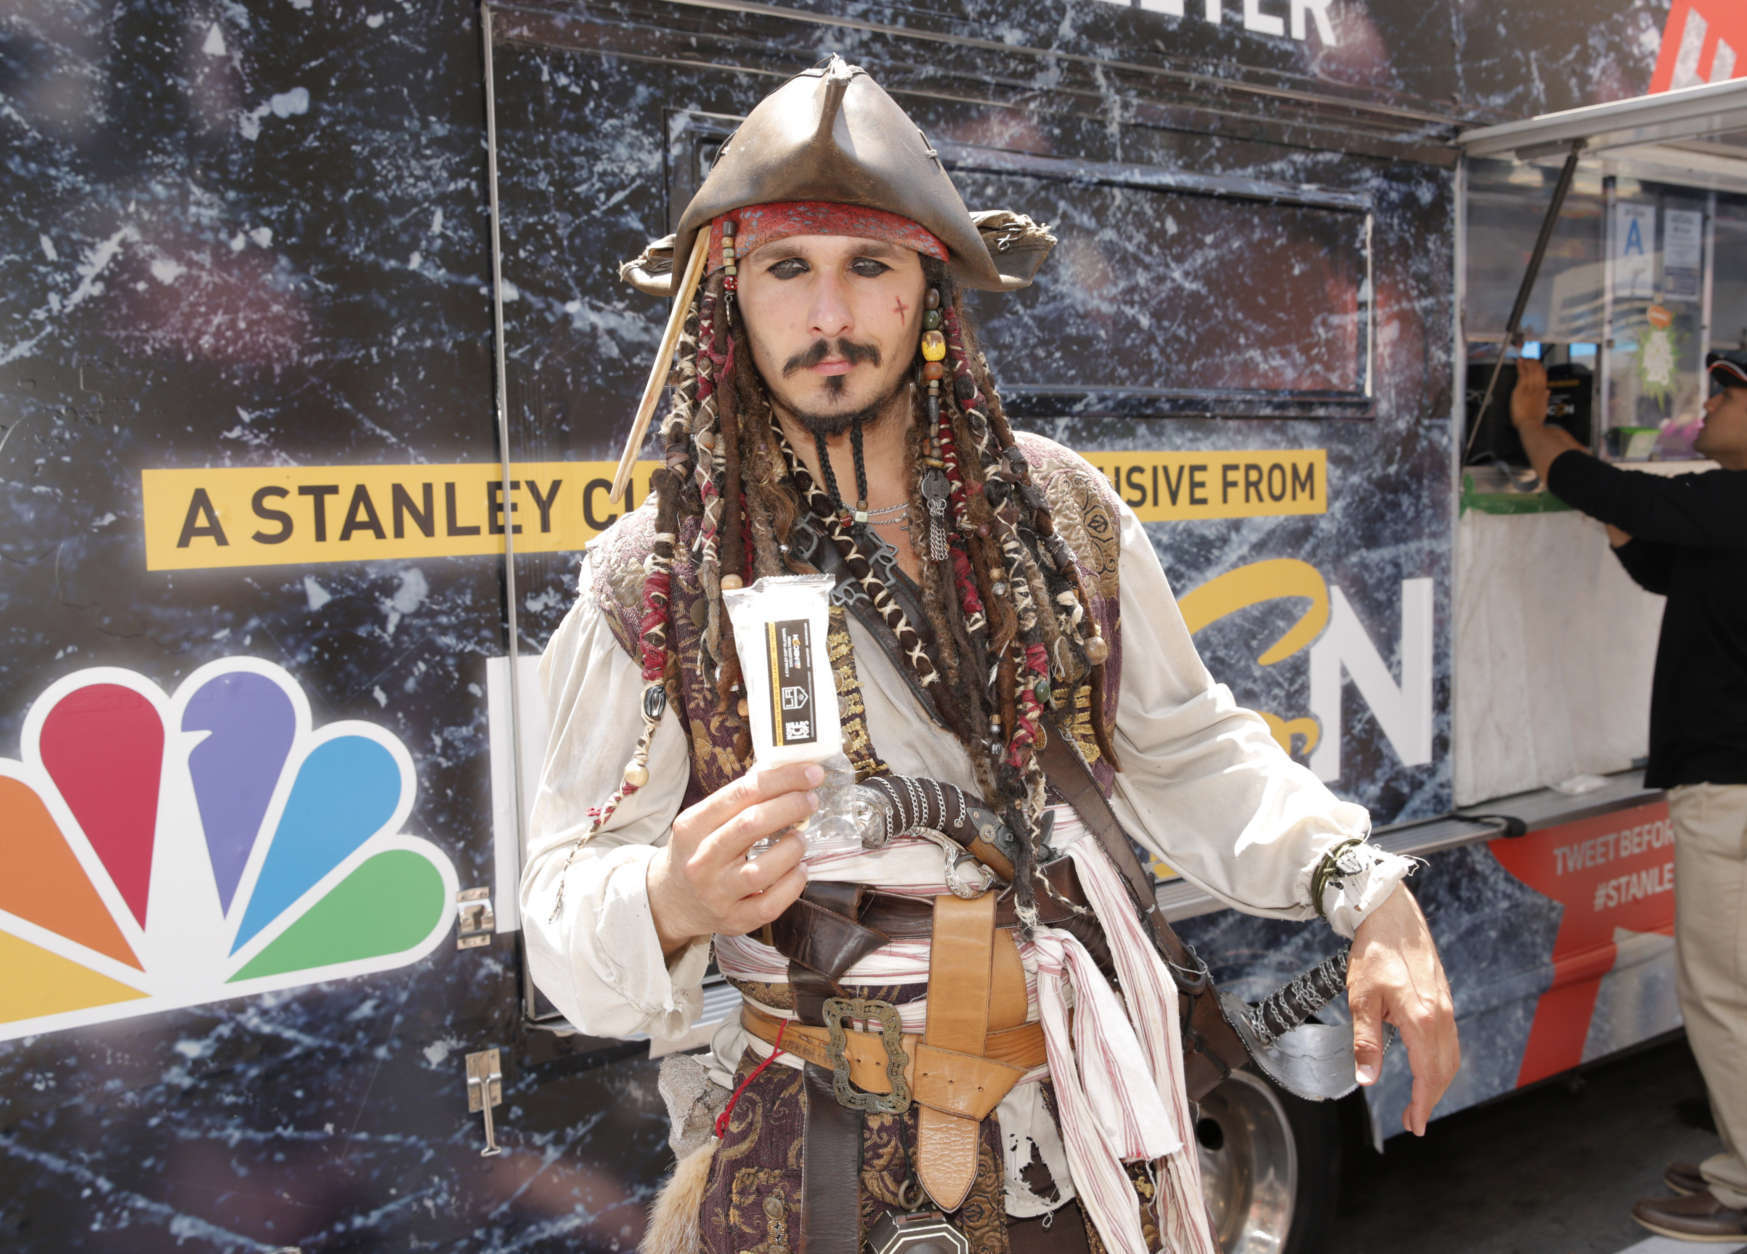 Captain Jack Sparrow character enjoys an NBC Sports Network's Home Ice Pop made from the ice of the LA Kings Rink at Hollywood and Highland on Saturday, May 10, 2014, in Los Angeles. (Photo by Todd Williamson/Invision for NBC Sports/AP Images)